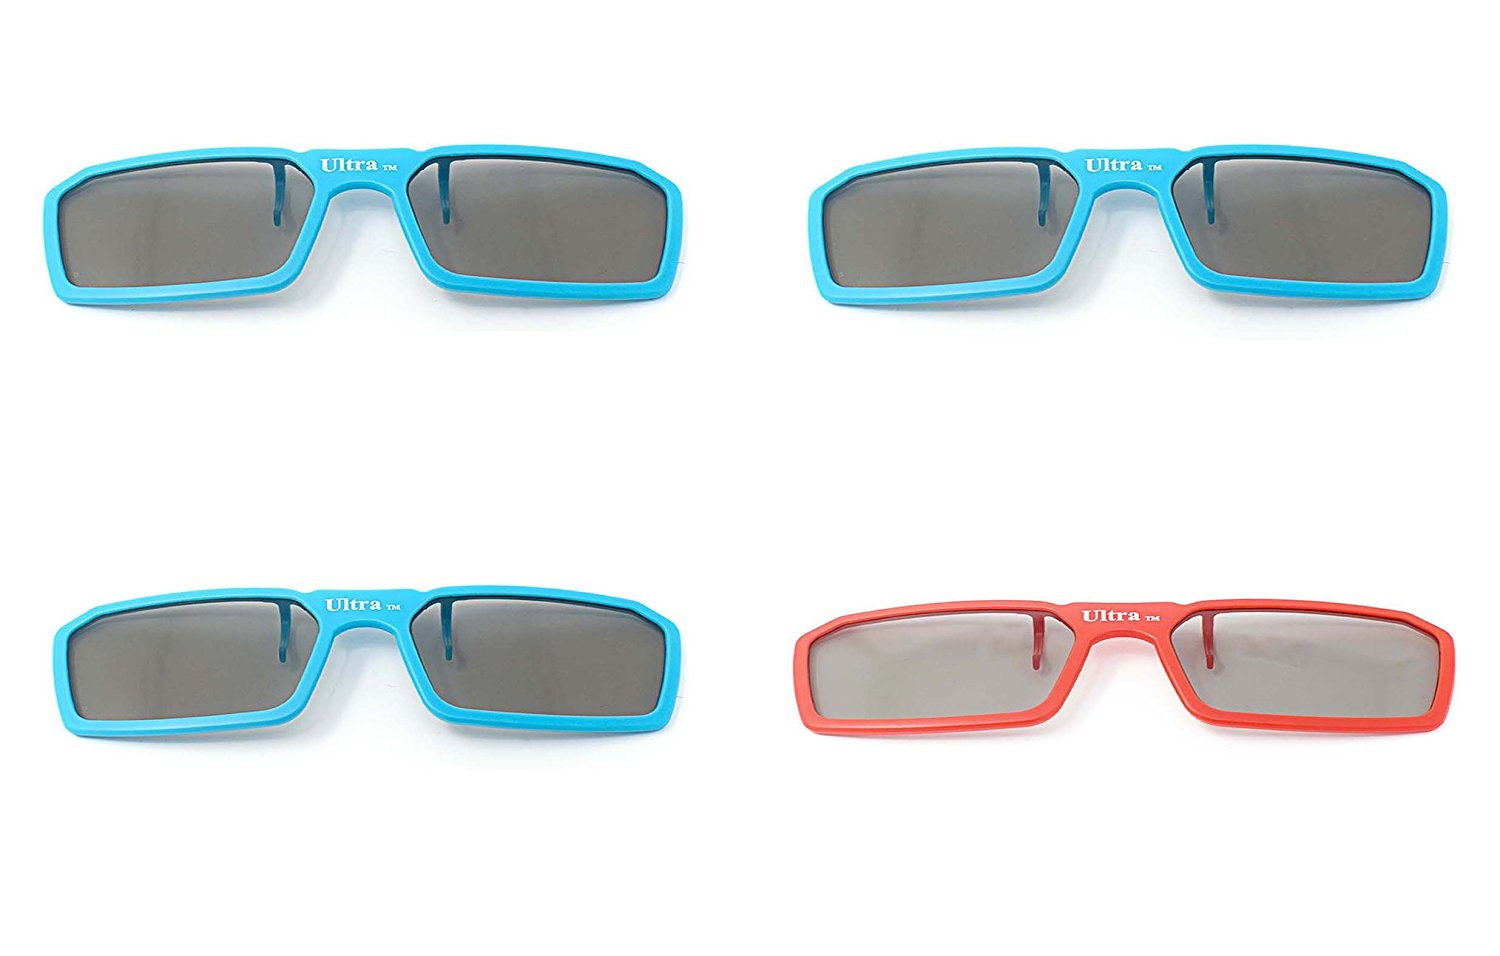 UltraByEasyPeasyStore 4 Pairs of Passive Universal 3D Standard Clip on Glasses for Prescription Eyewear for use W/ all Passive 3d Tvs Cinema & Projectors (4 x Clip on 3 Blue 1 Red)